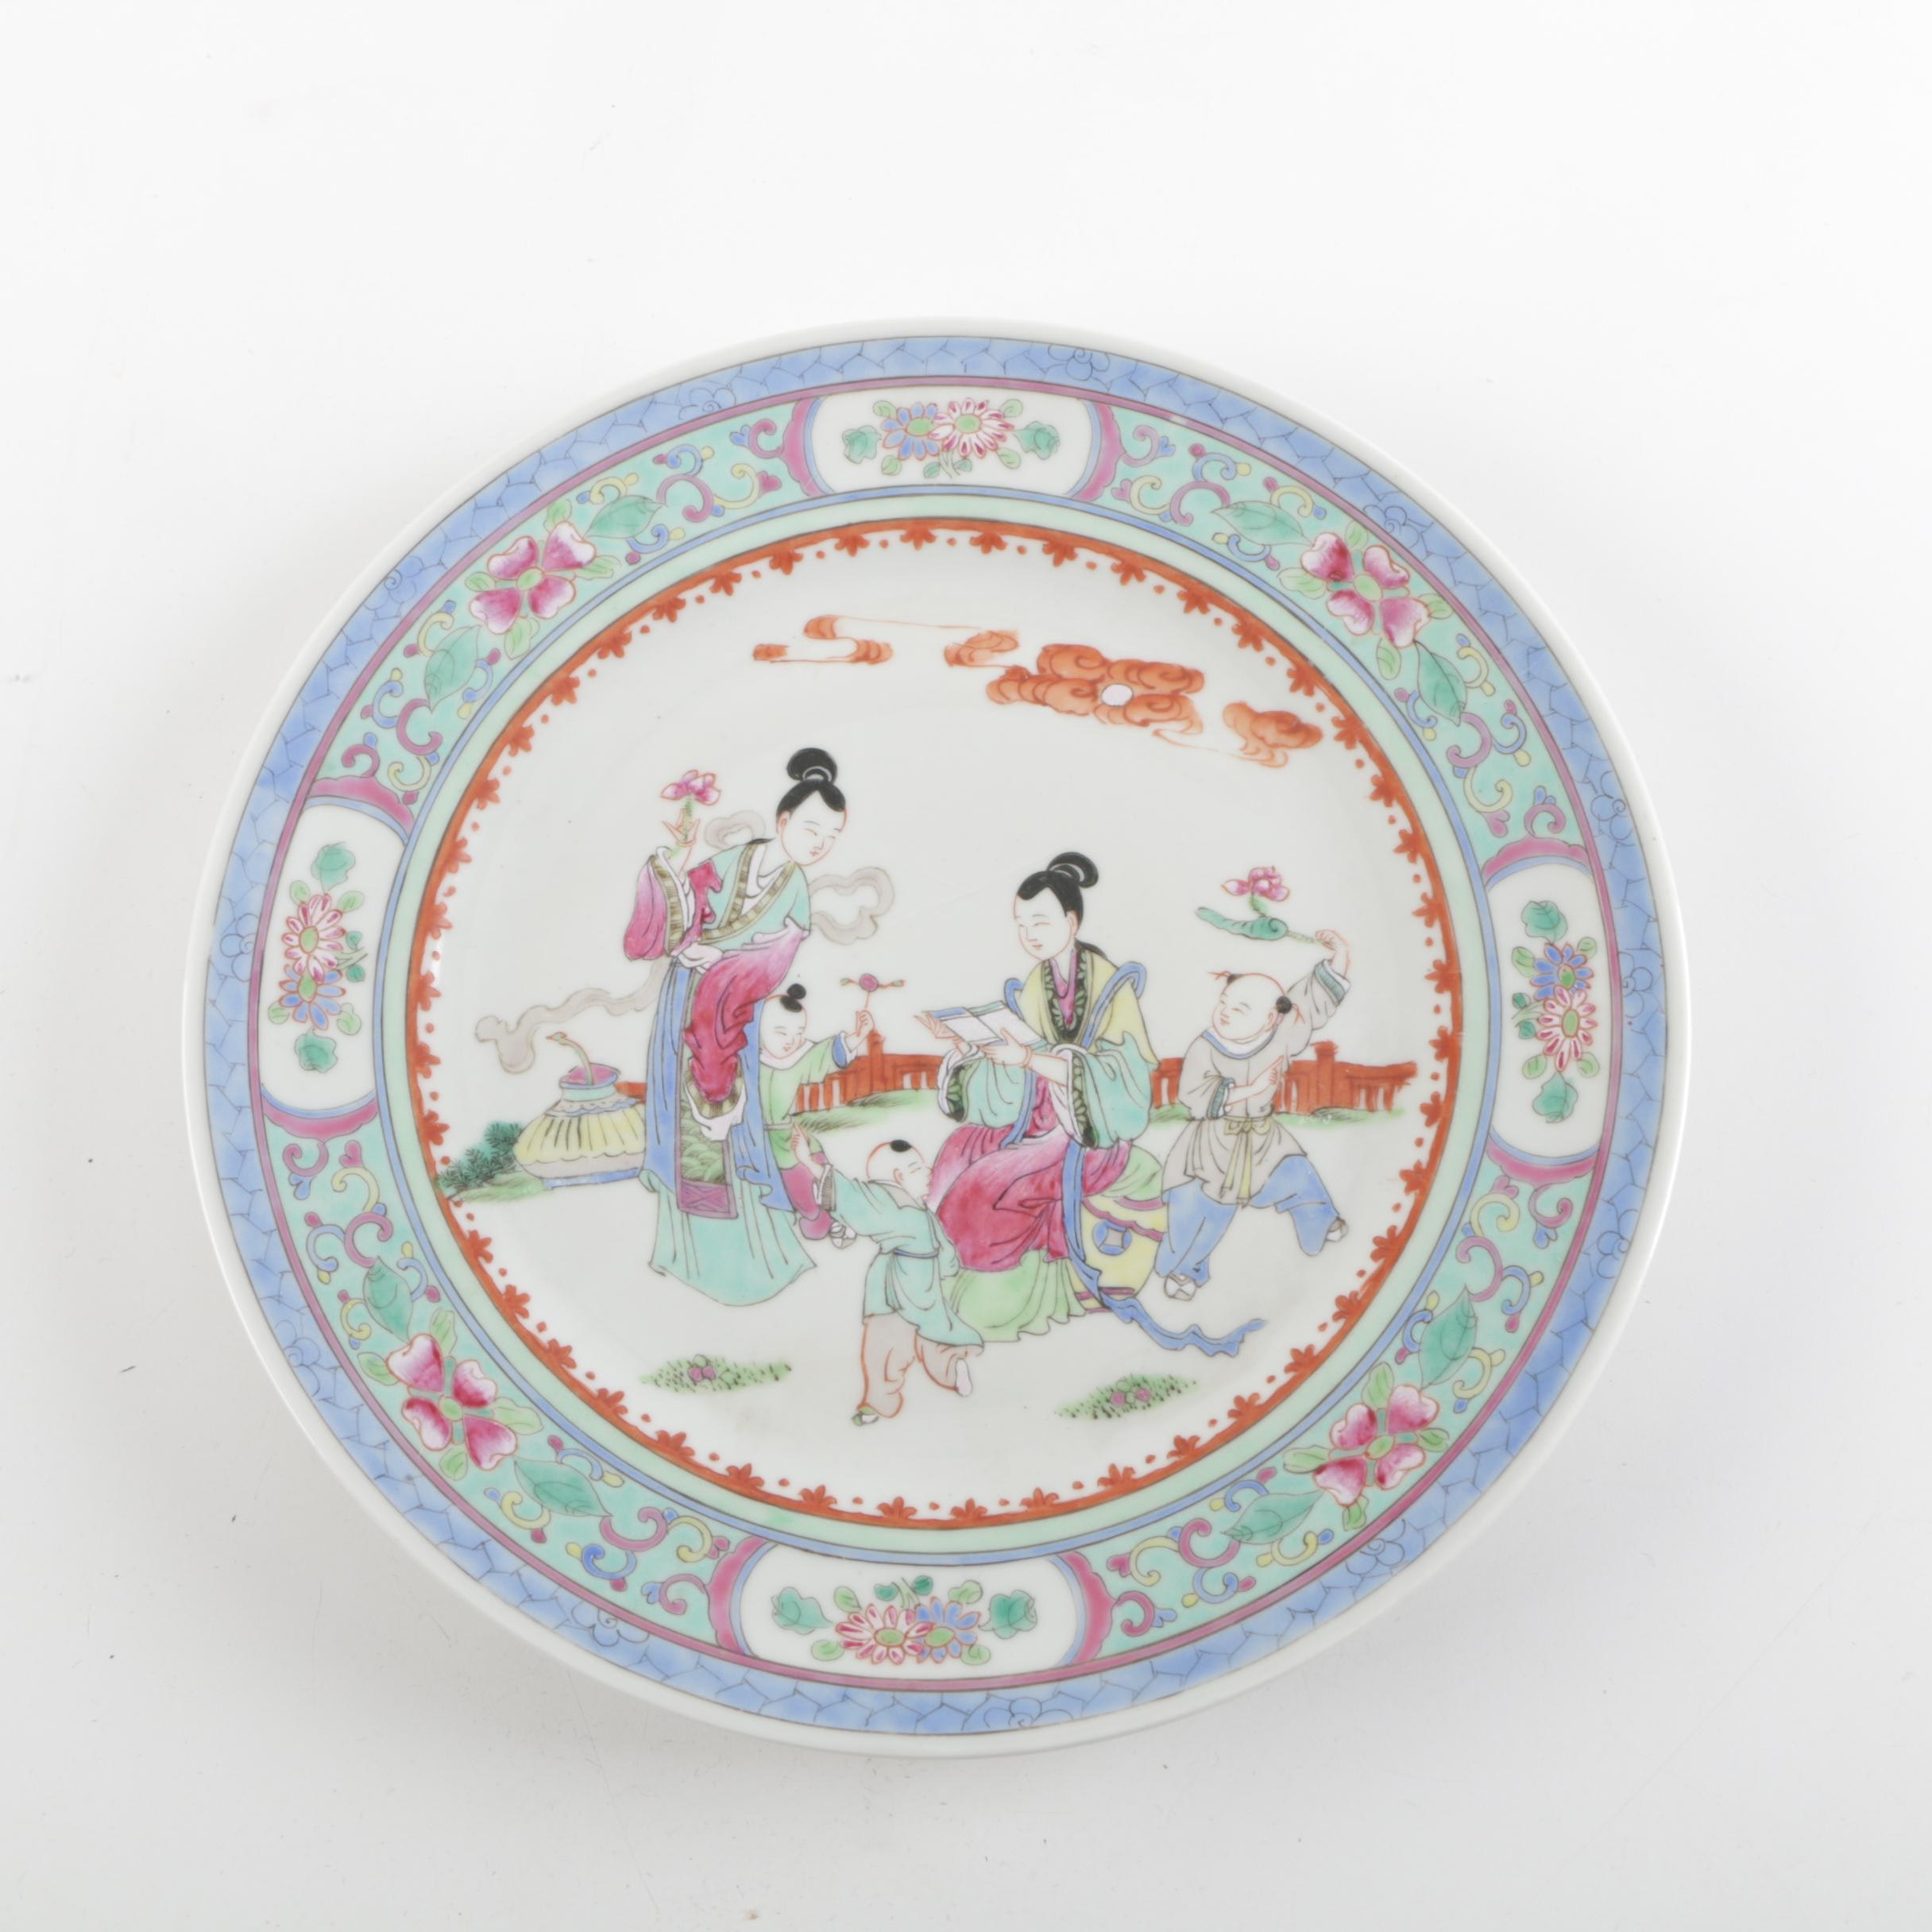 Vintage Chinese Hand-painted Porcelain Plate